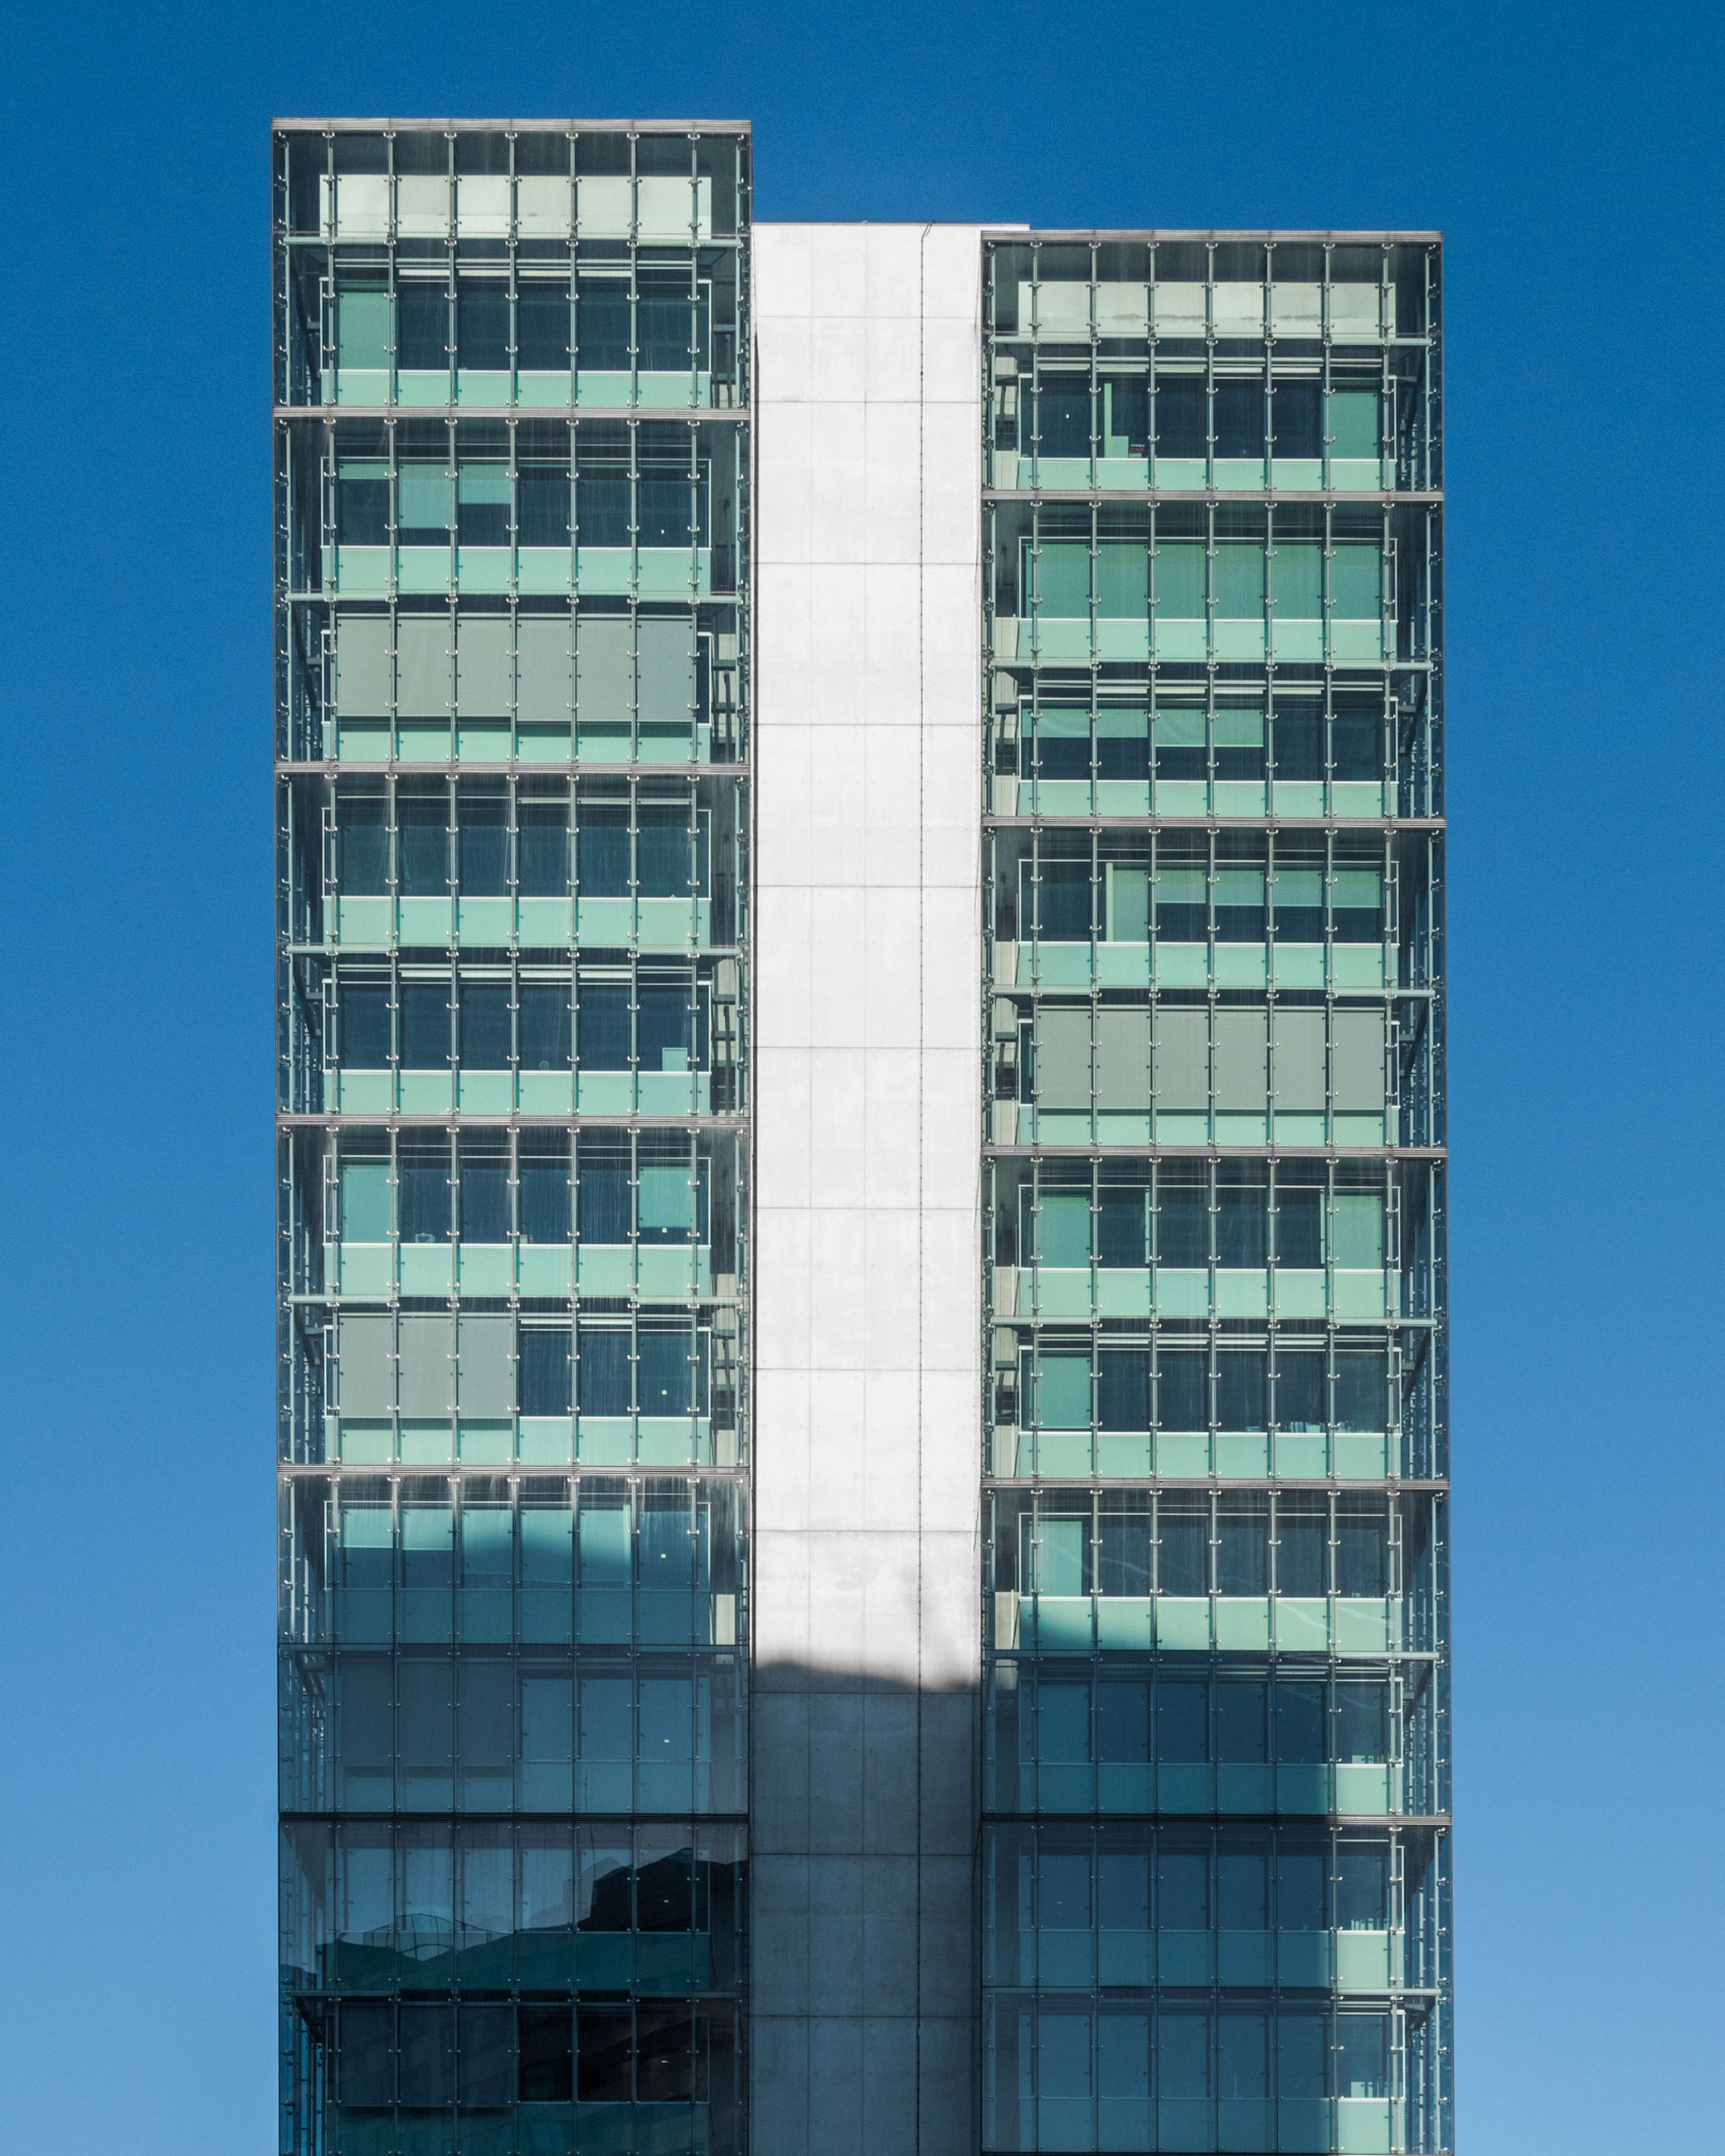 built structure, architecture, building exterior, building, office building exterior, modern, office, sky, low angle view, glass - material, no people, city, day, nature, outdoors, clear sky, reflection, blue, window, sunlight, skyscraper